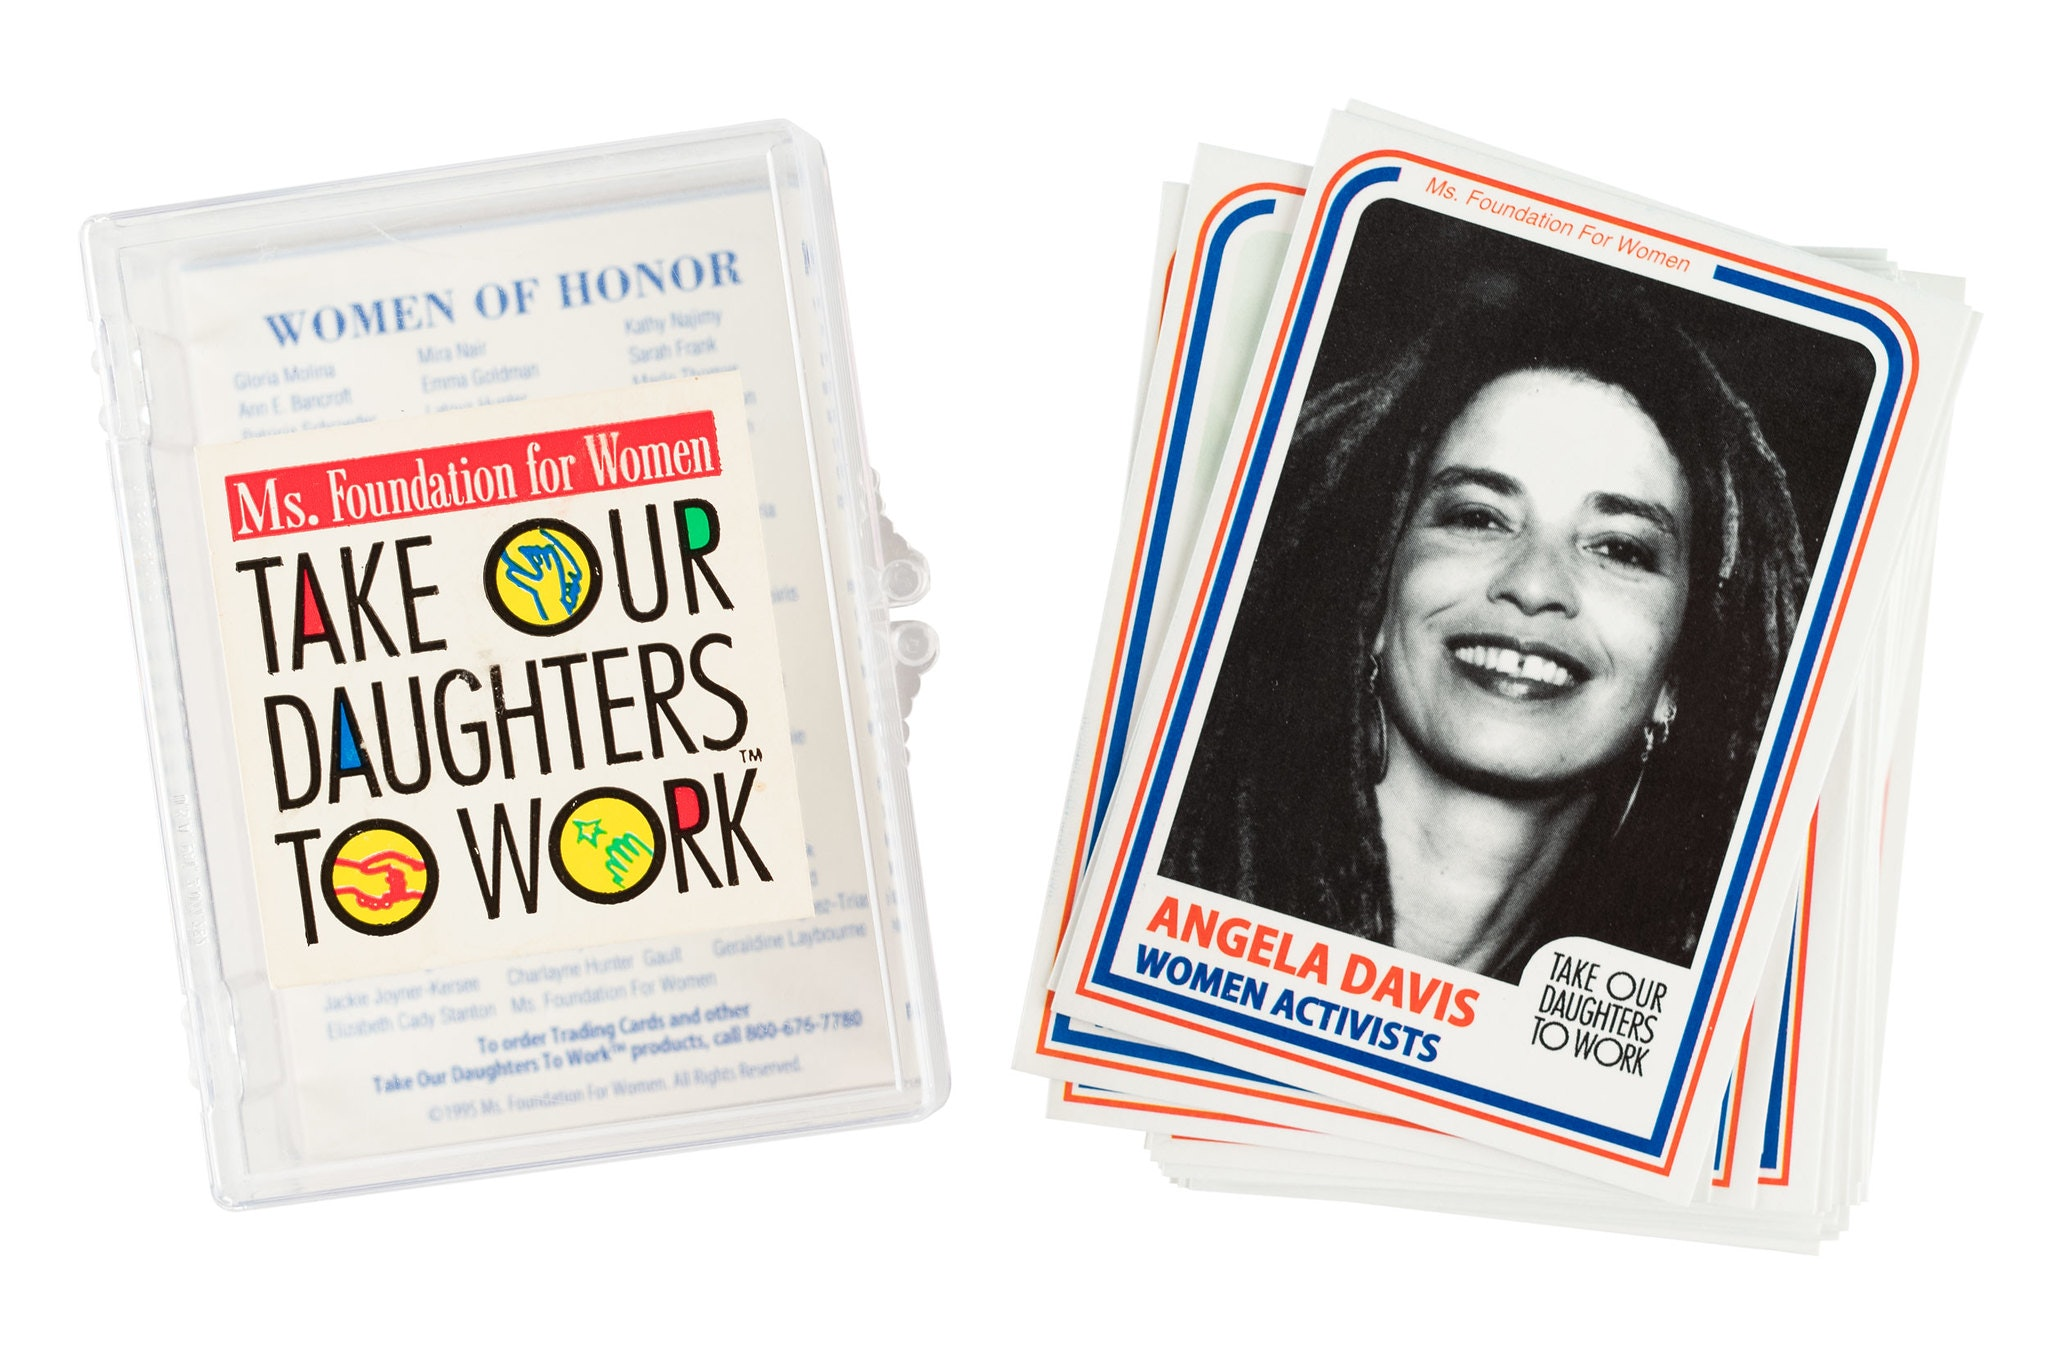 Trading card pack with headshot of Angela Davis on one face of the card.